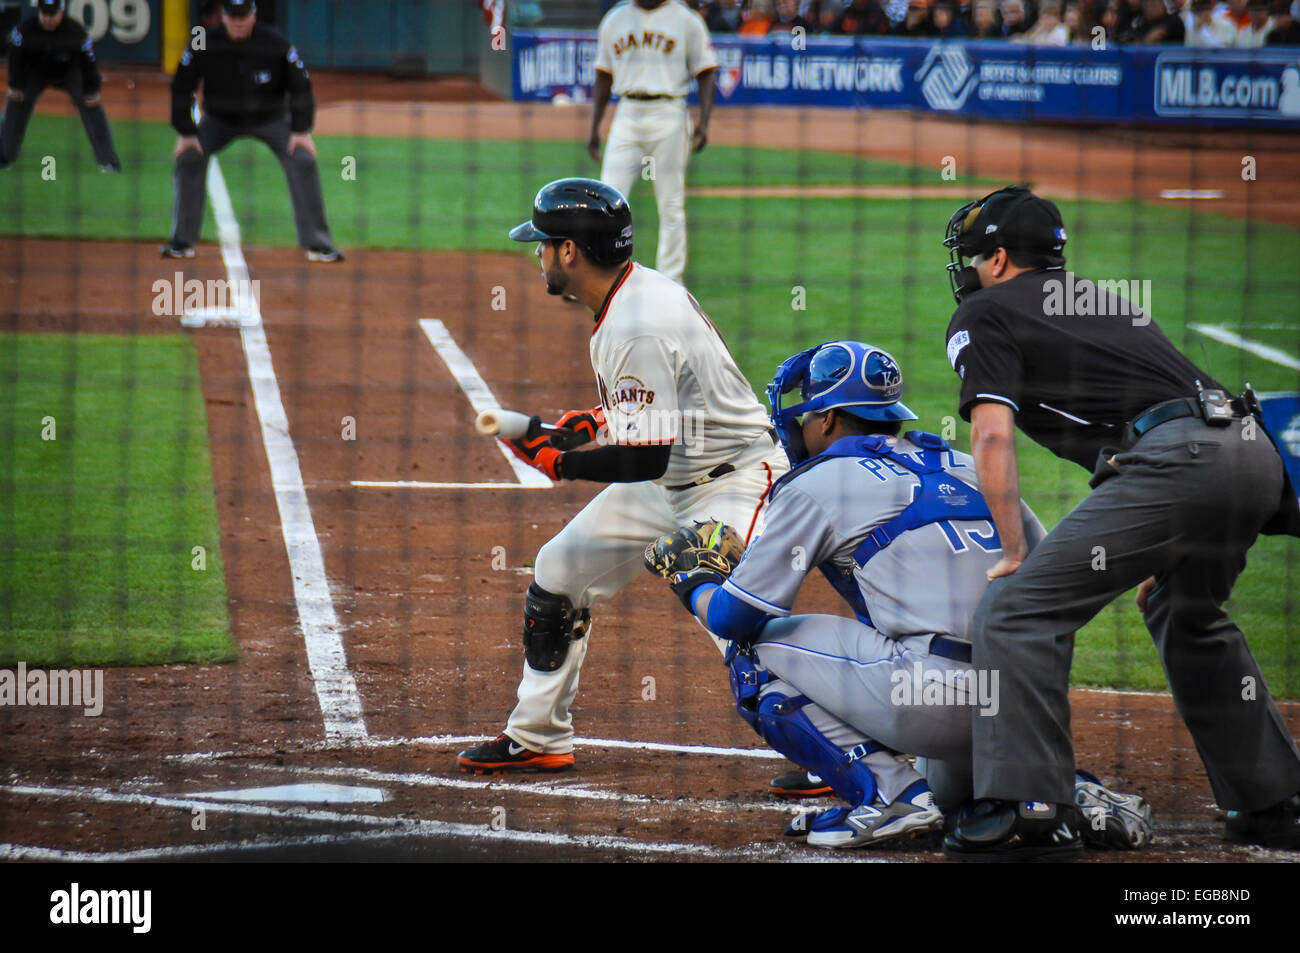 2014 World Series game between the San Francisco Giants and the Kansas City Royals at AT&T Park. Gregor Blanco - Stock Image